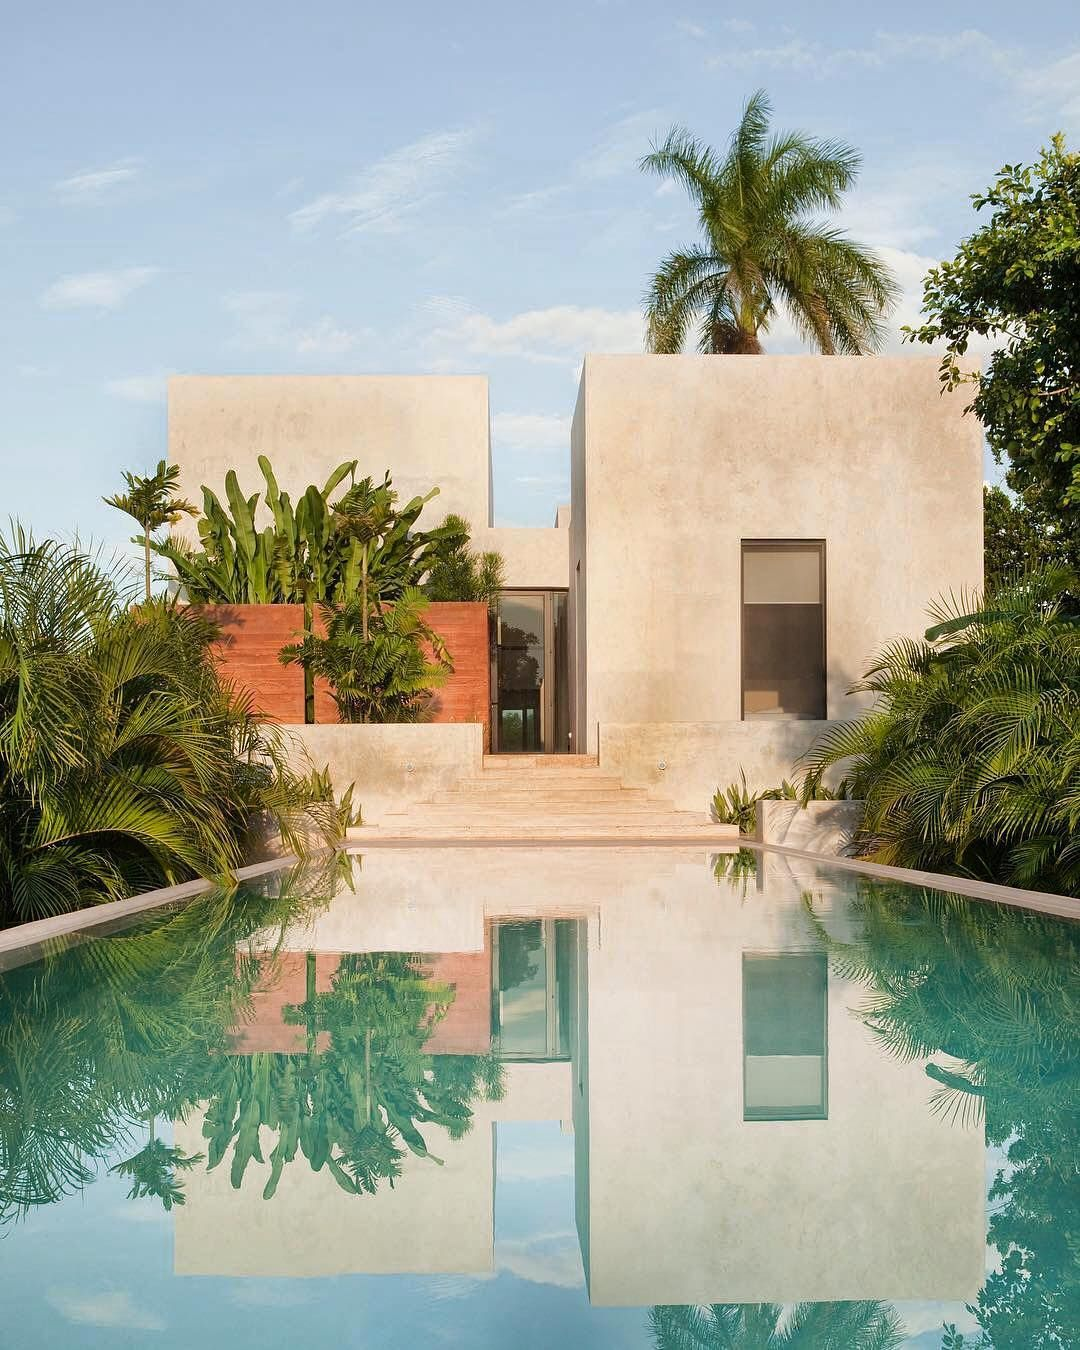 Architettura Case Moderne Idee renovated by @reyesrios_larrain, 'hacienda bacoc' used to be